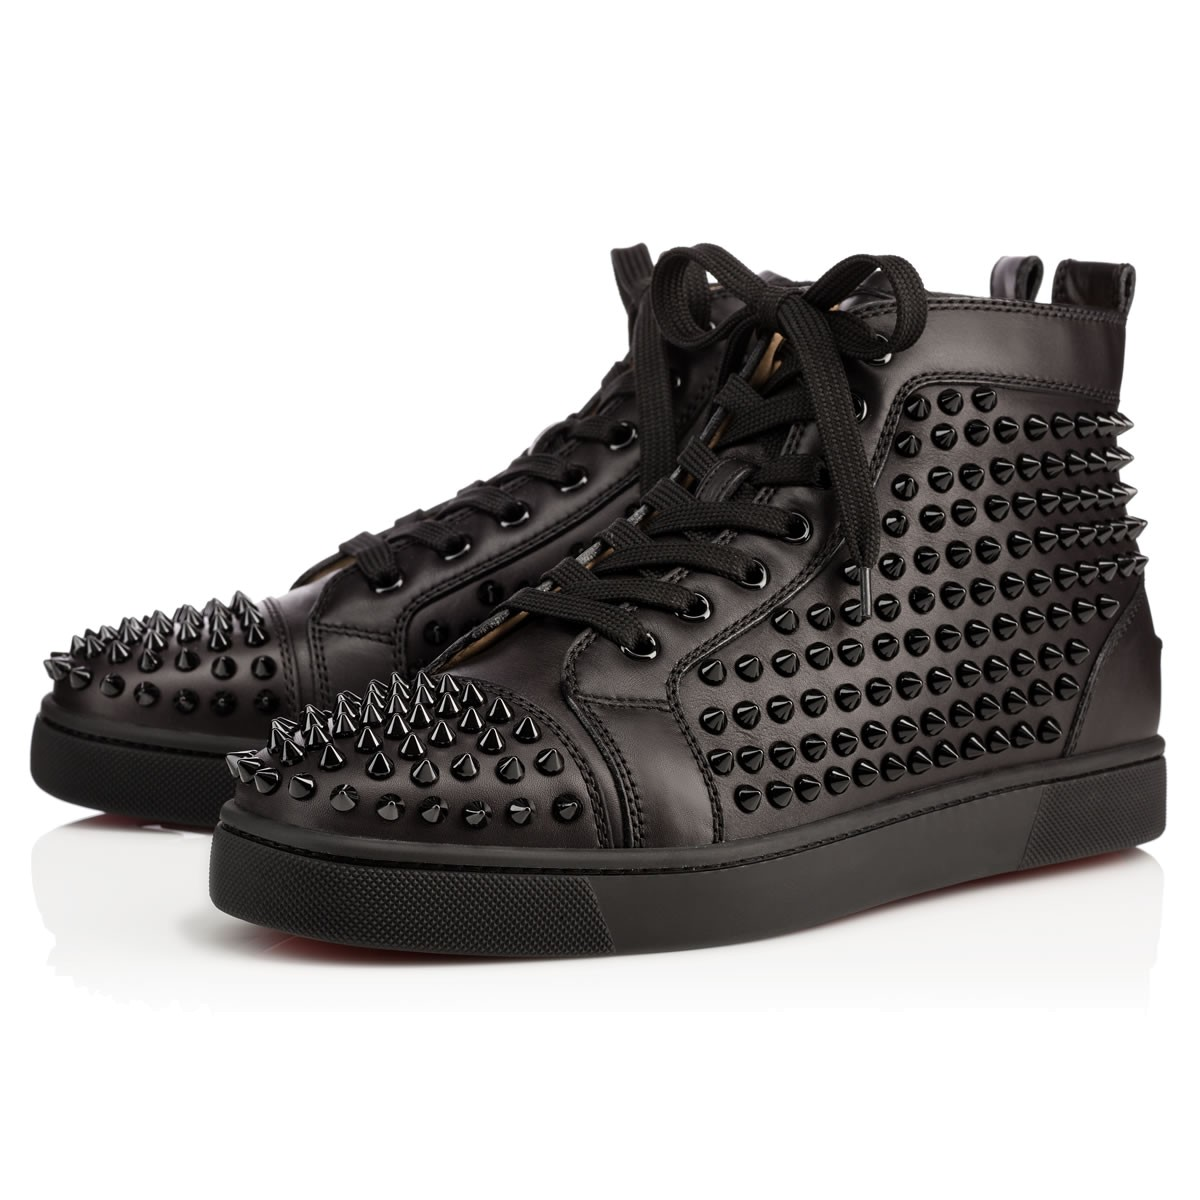 low priced 20b1d b76bf Louis Spikes Black/Black/Bk Leather - Men Shoes - Christian Louboutin